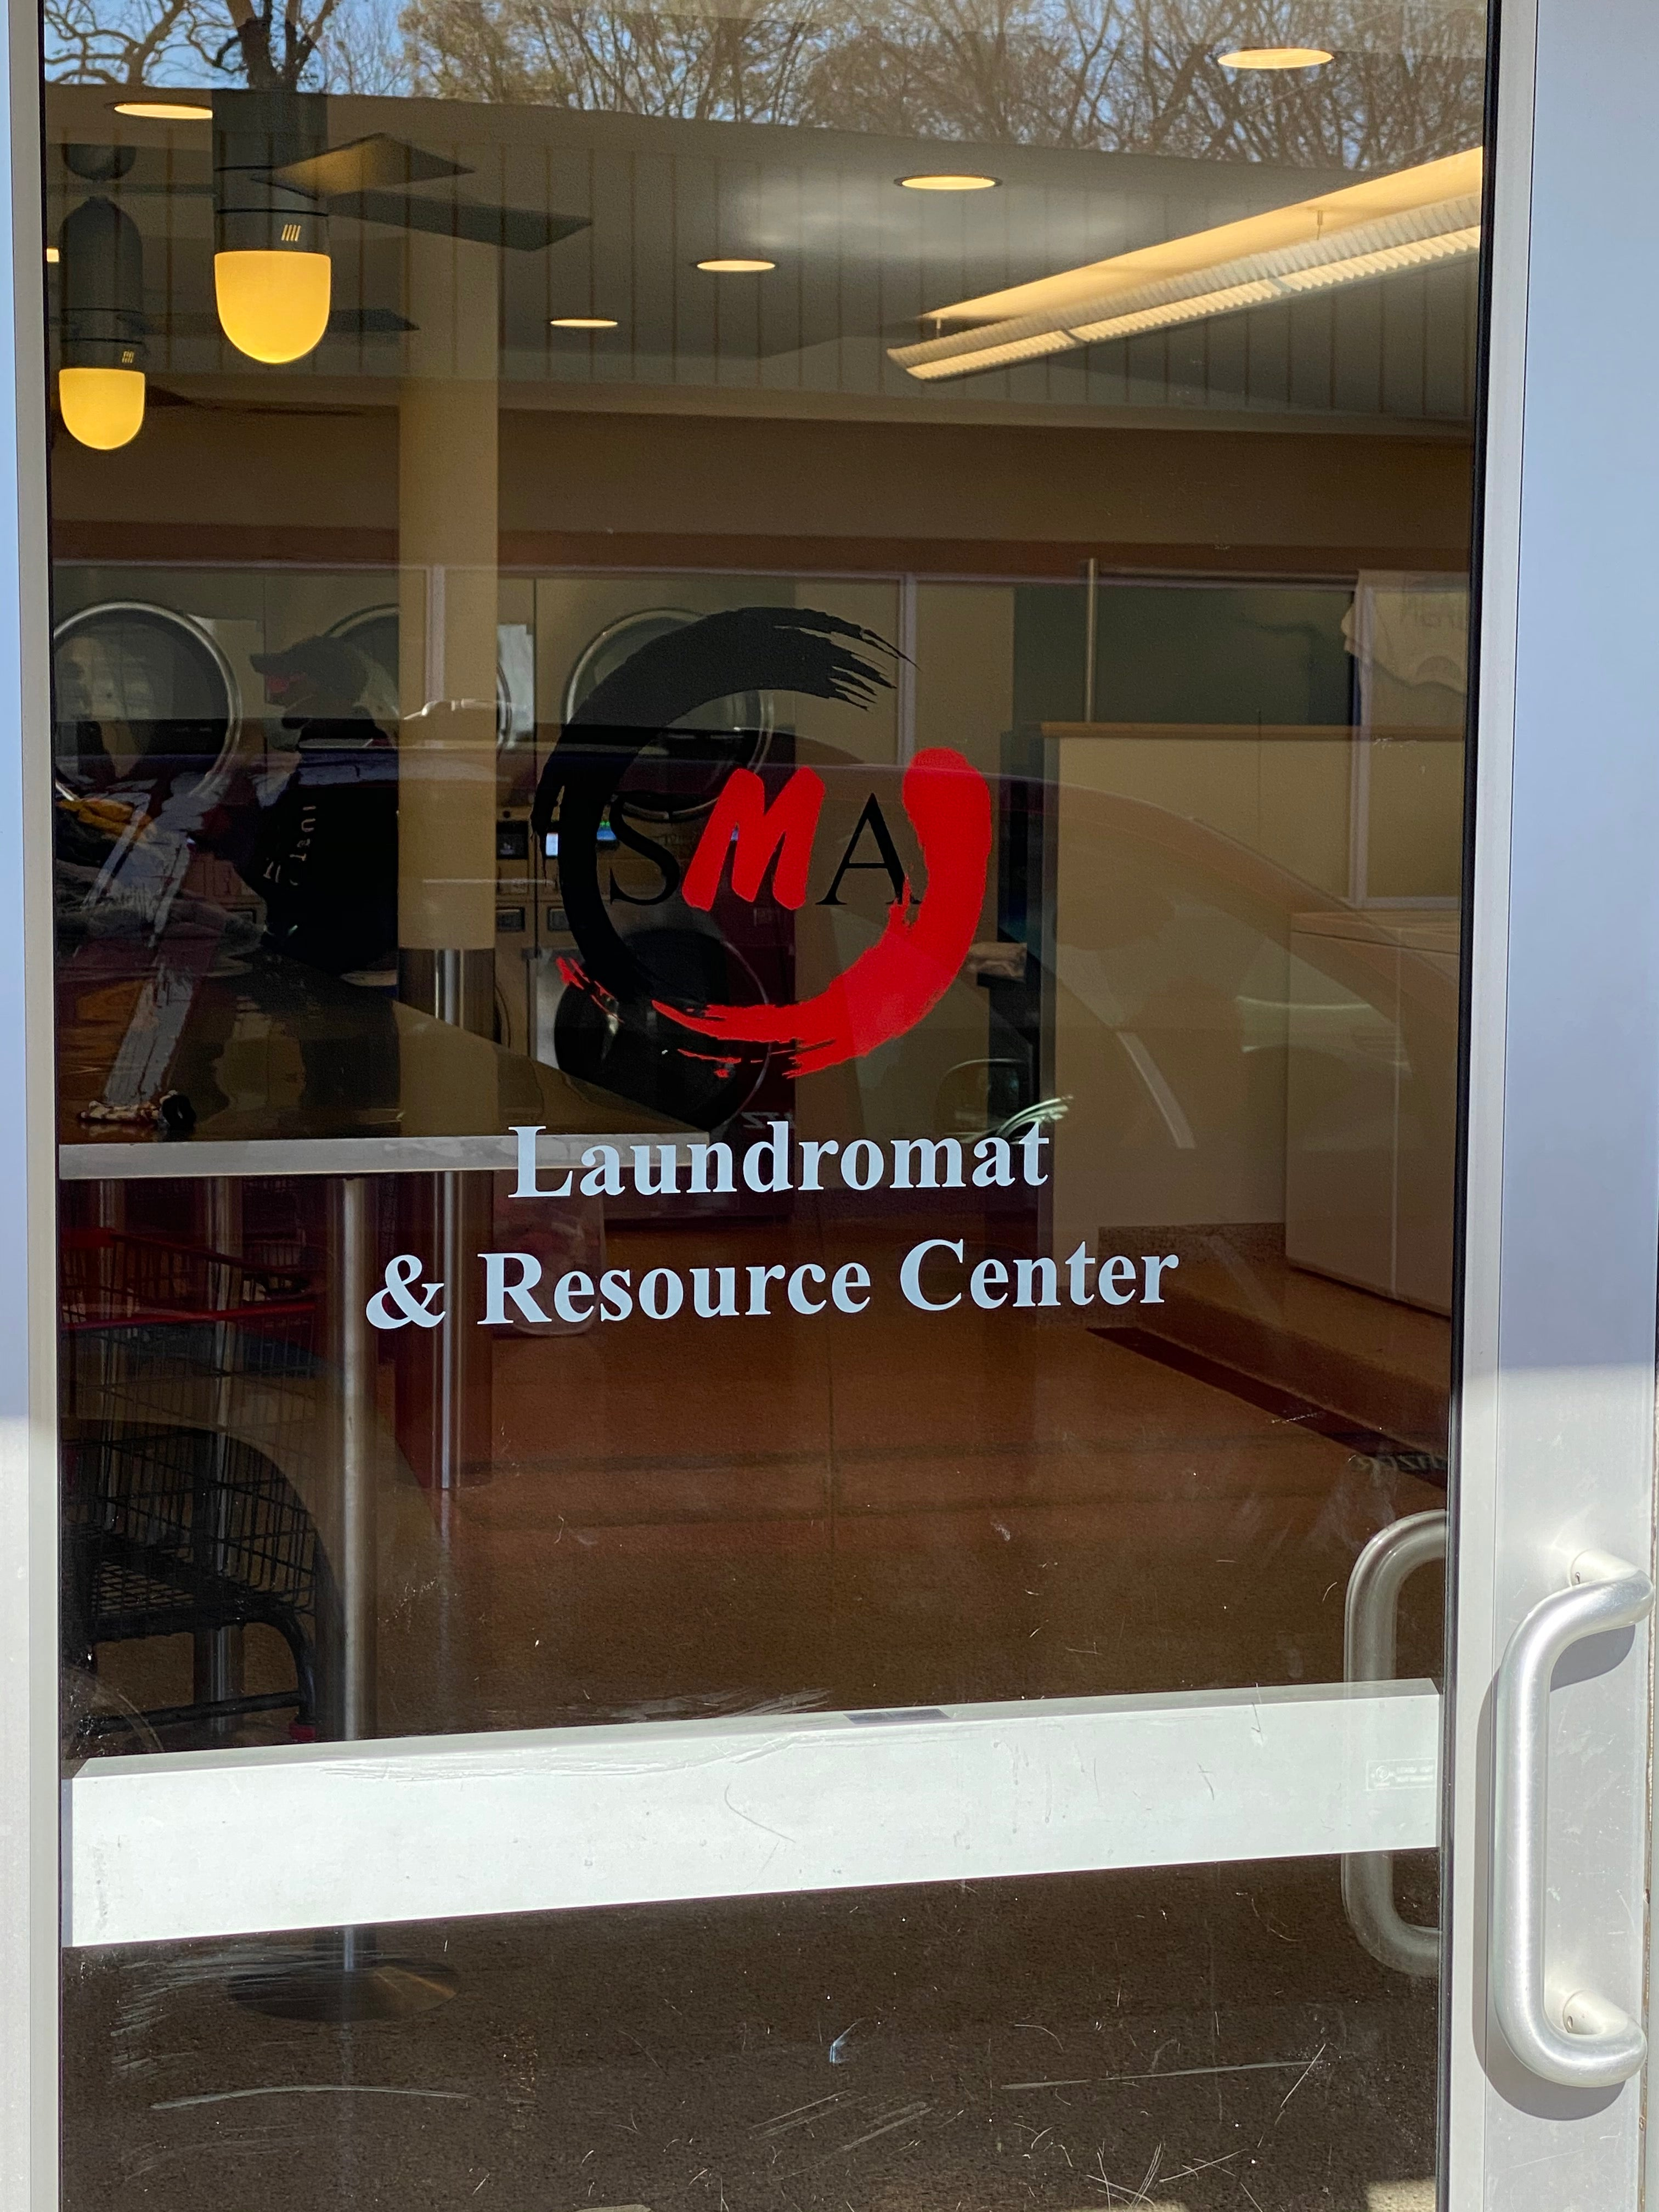 South Memphis Alliance Laundromat & Resource Center Recently Upgrade by Star Distributing